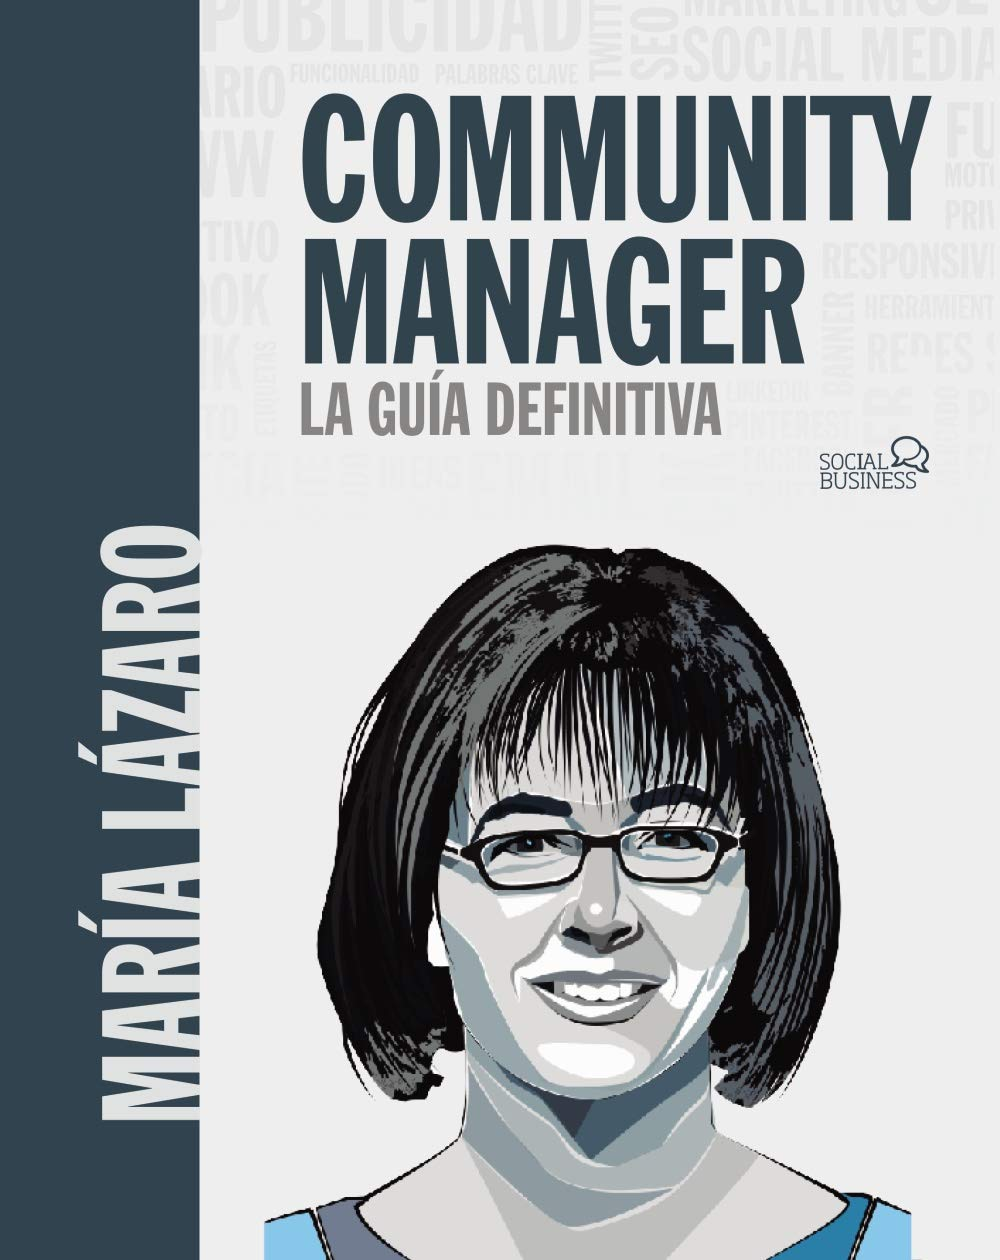 Community manager. La guía definitiva (Social Media)